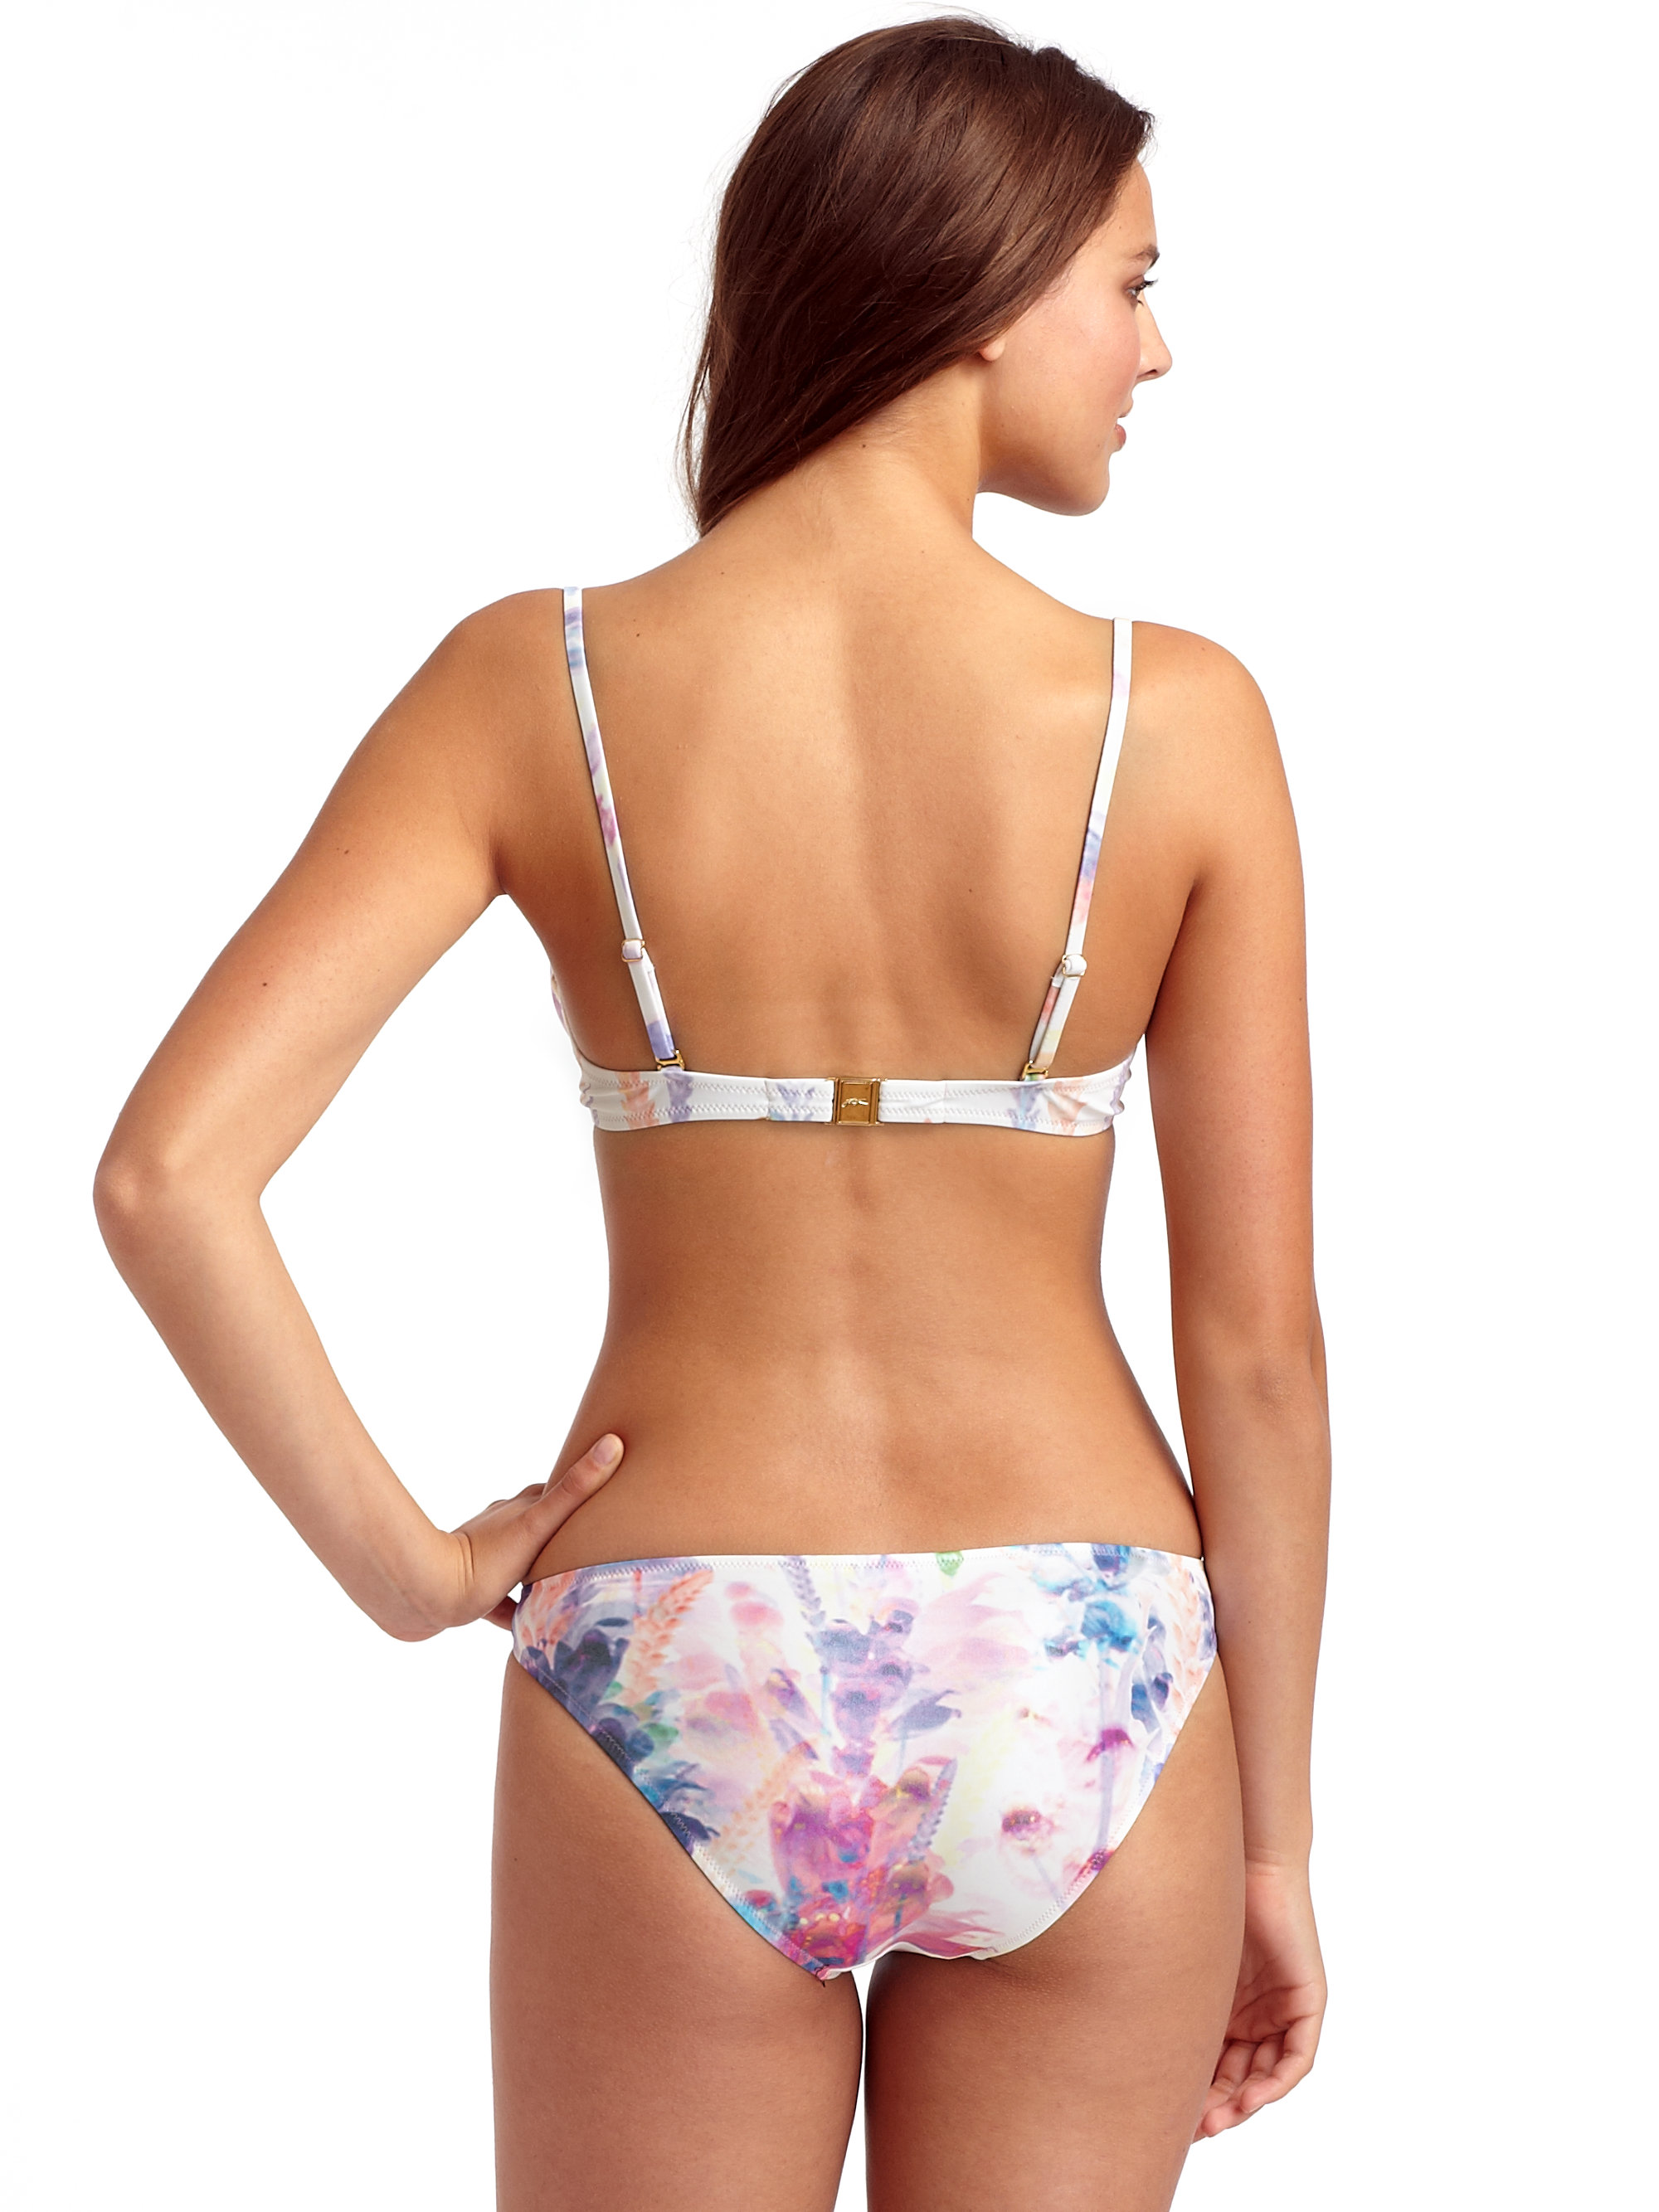 Lyst gottex flower stem two piece bikini in white gallery mightylinksfo